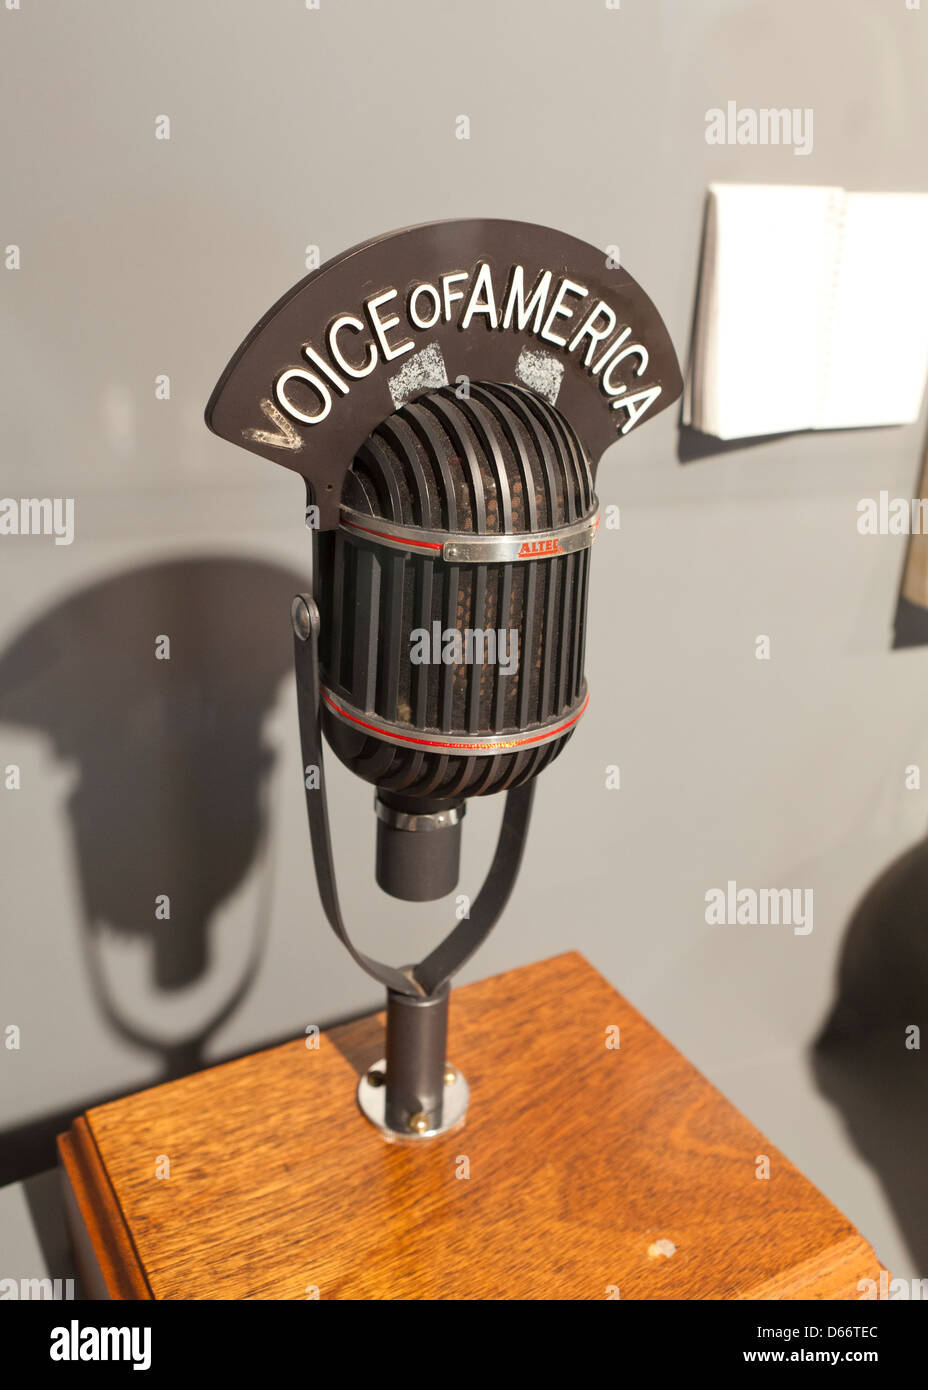 Antique Voice of America broadcast mic - Stock Image